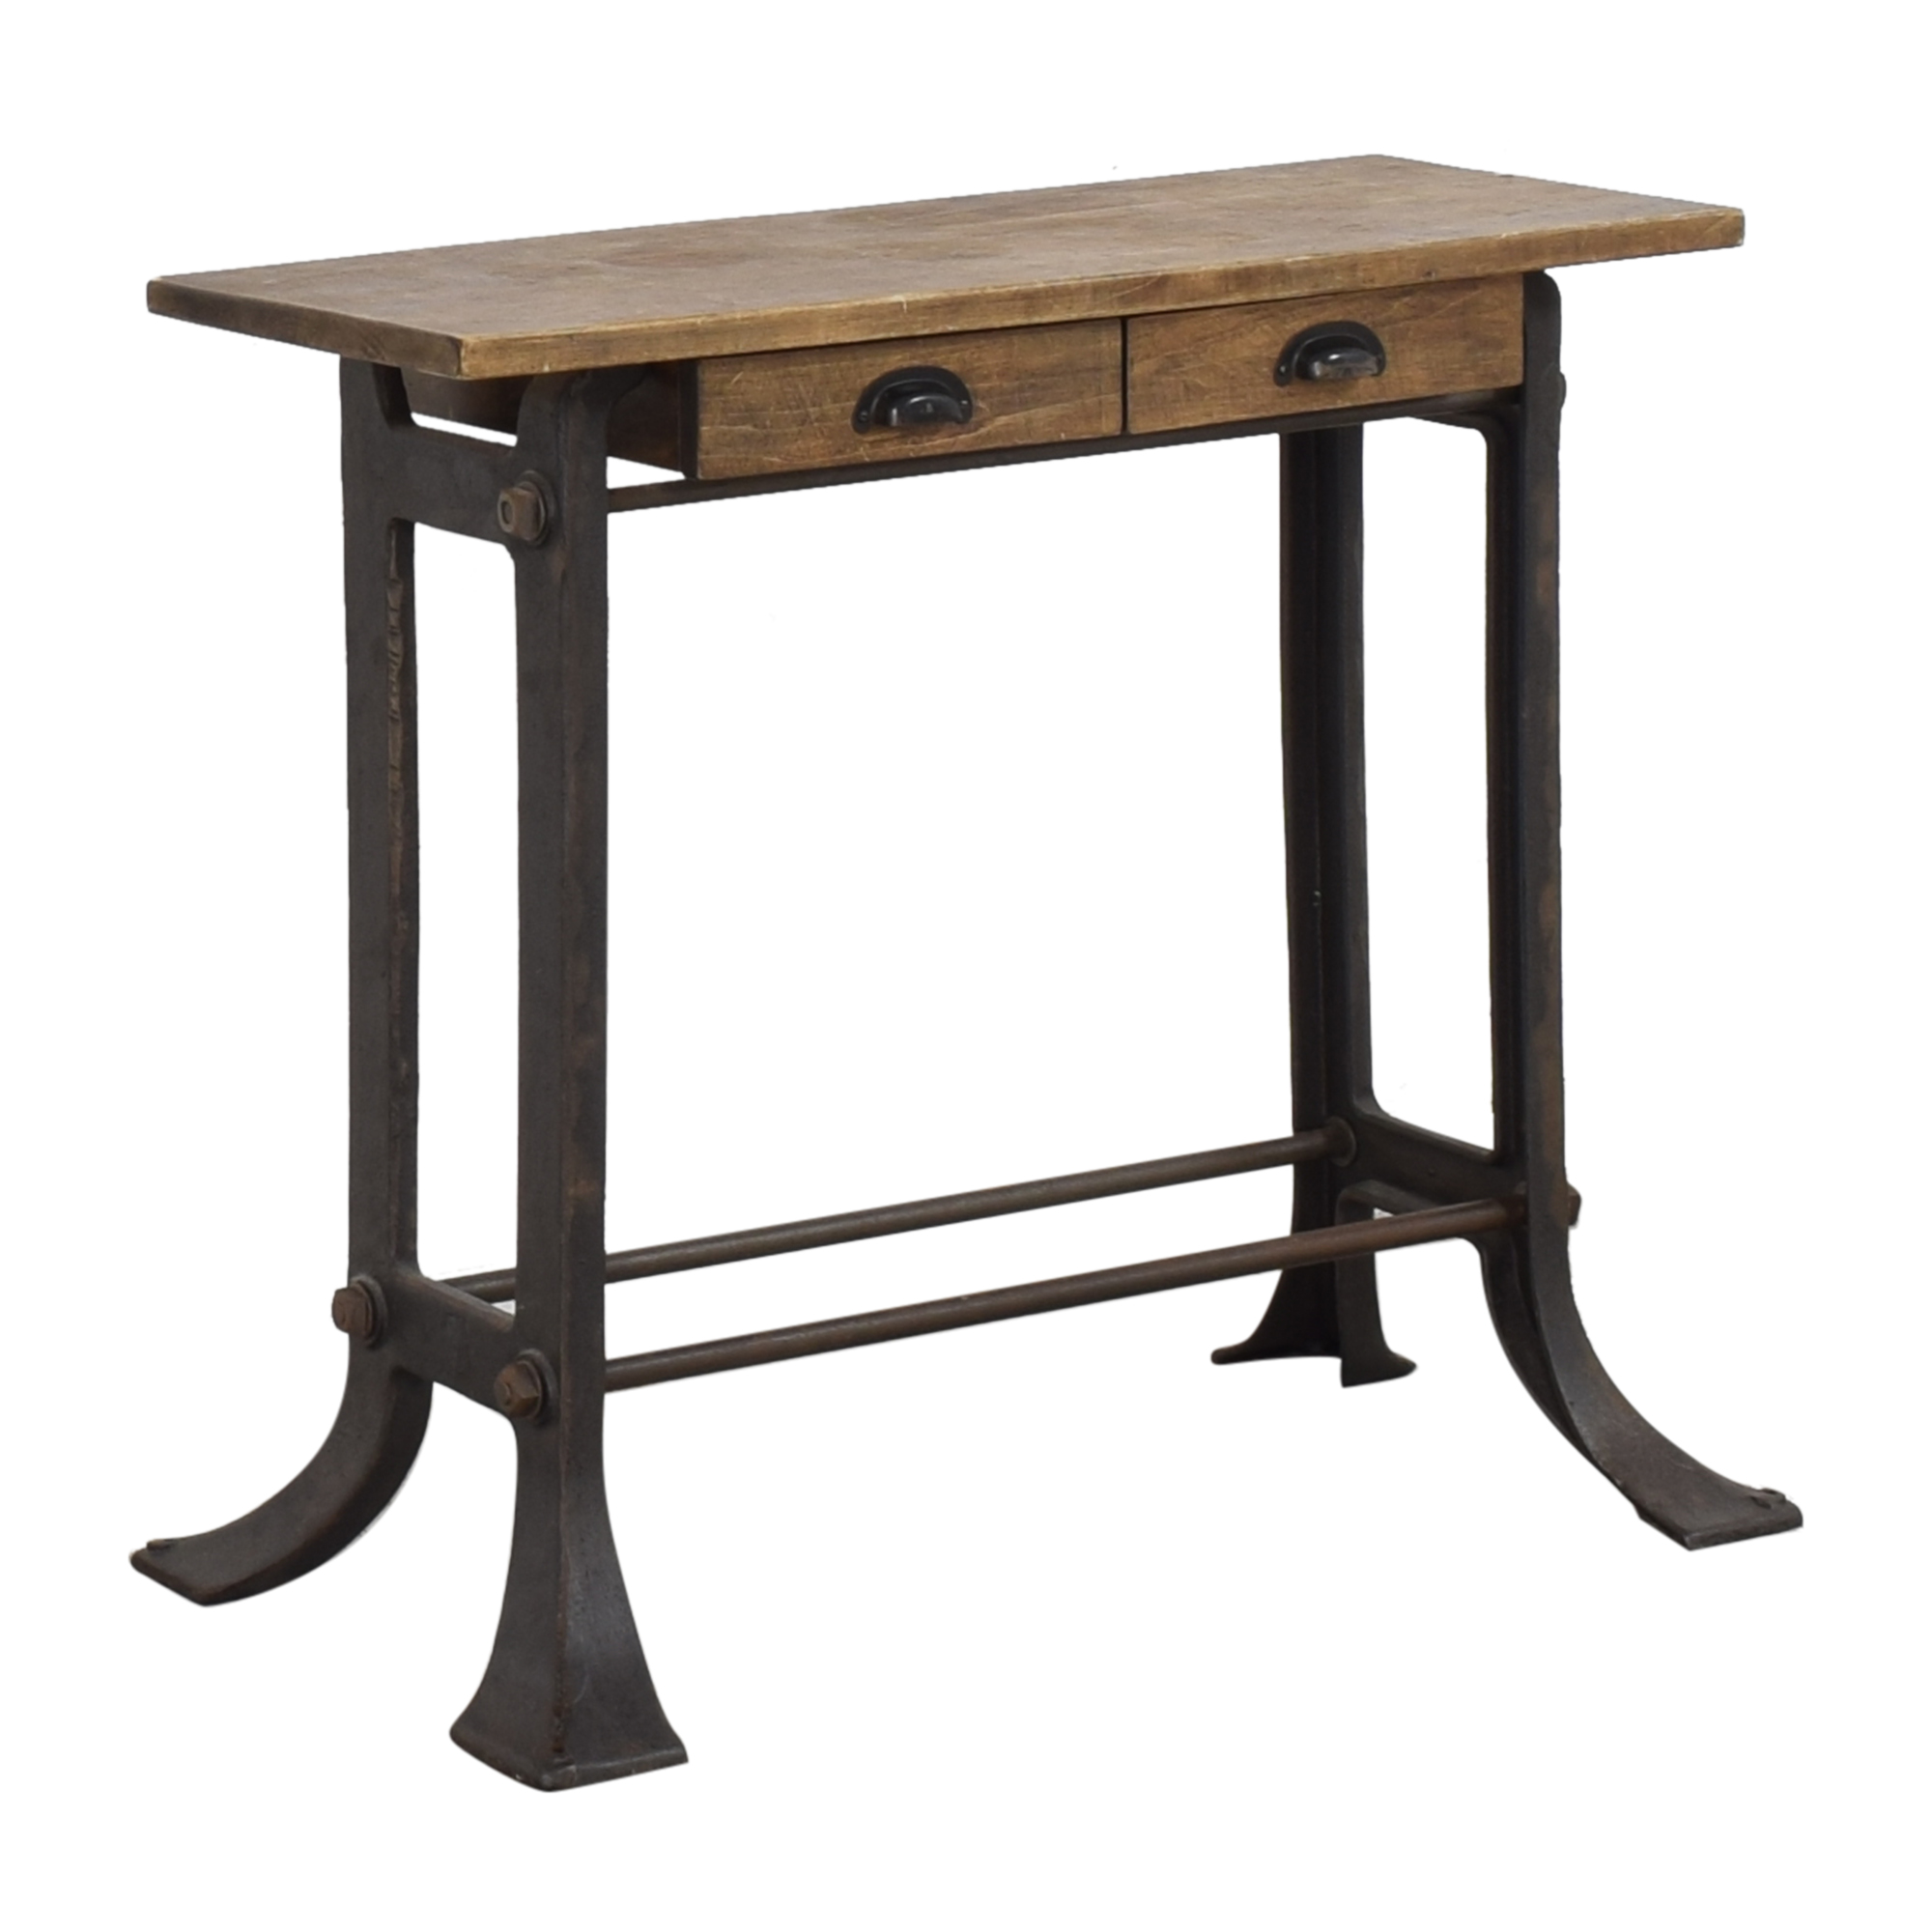 Get Back Get Back Industrial Console Table nj